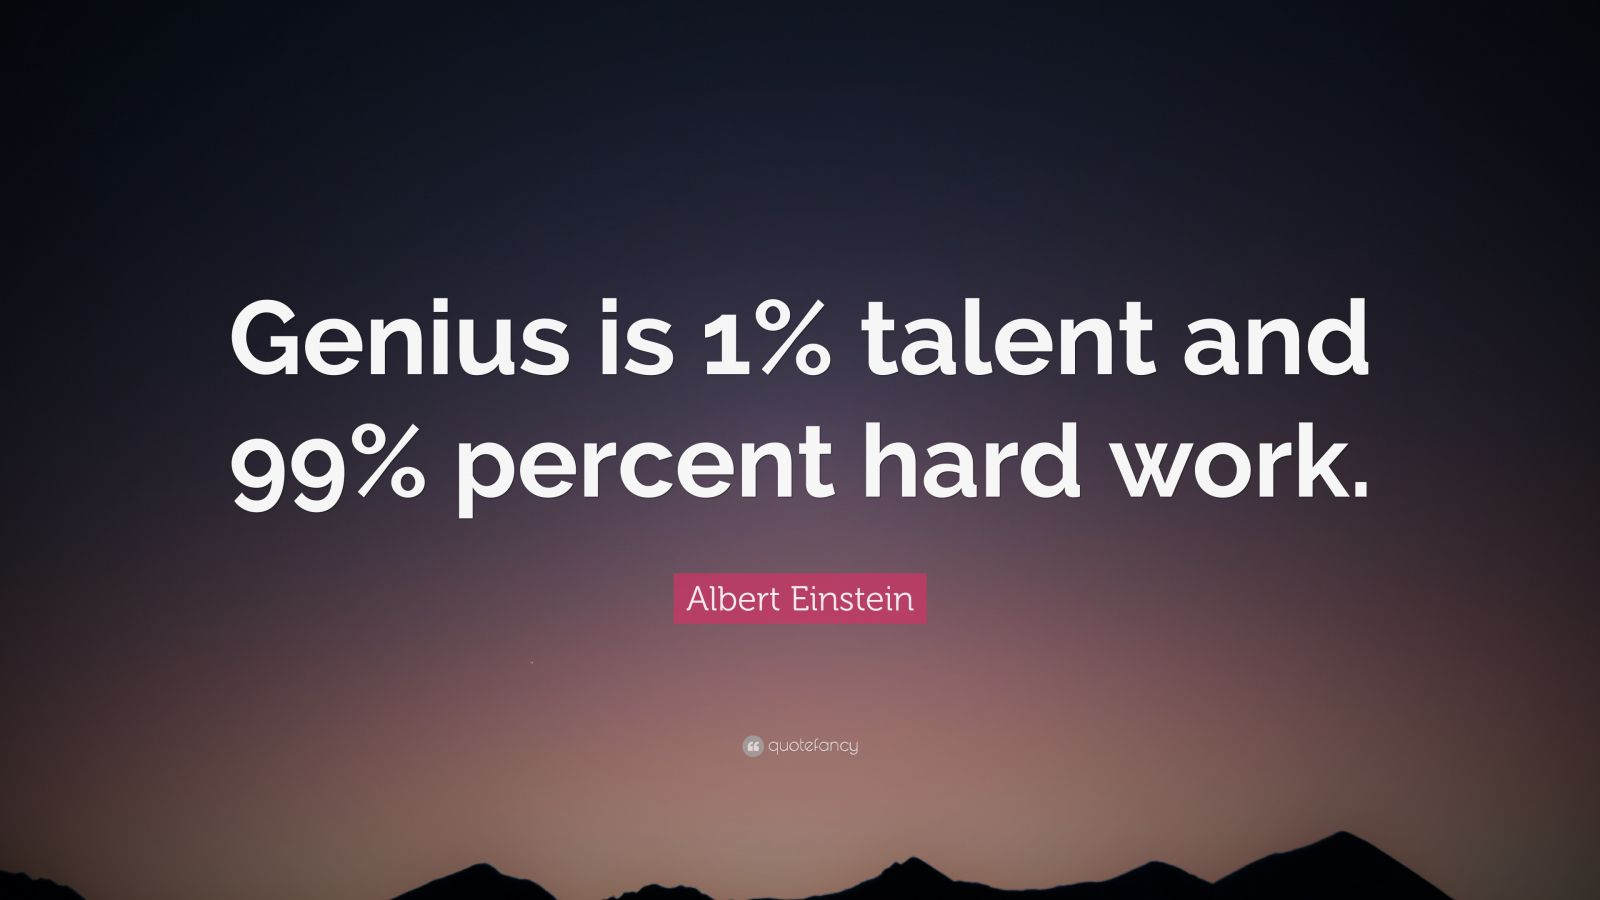 Beautiful Inspirational Quotes Wallpapers Albert Einstein Quote Genius Is 1 Talent And 99